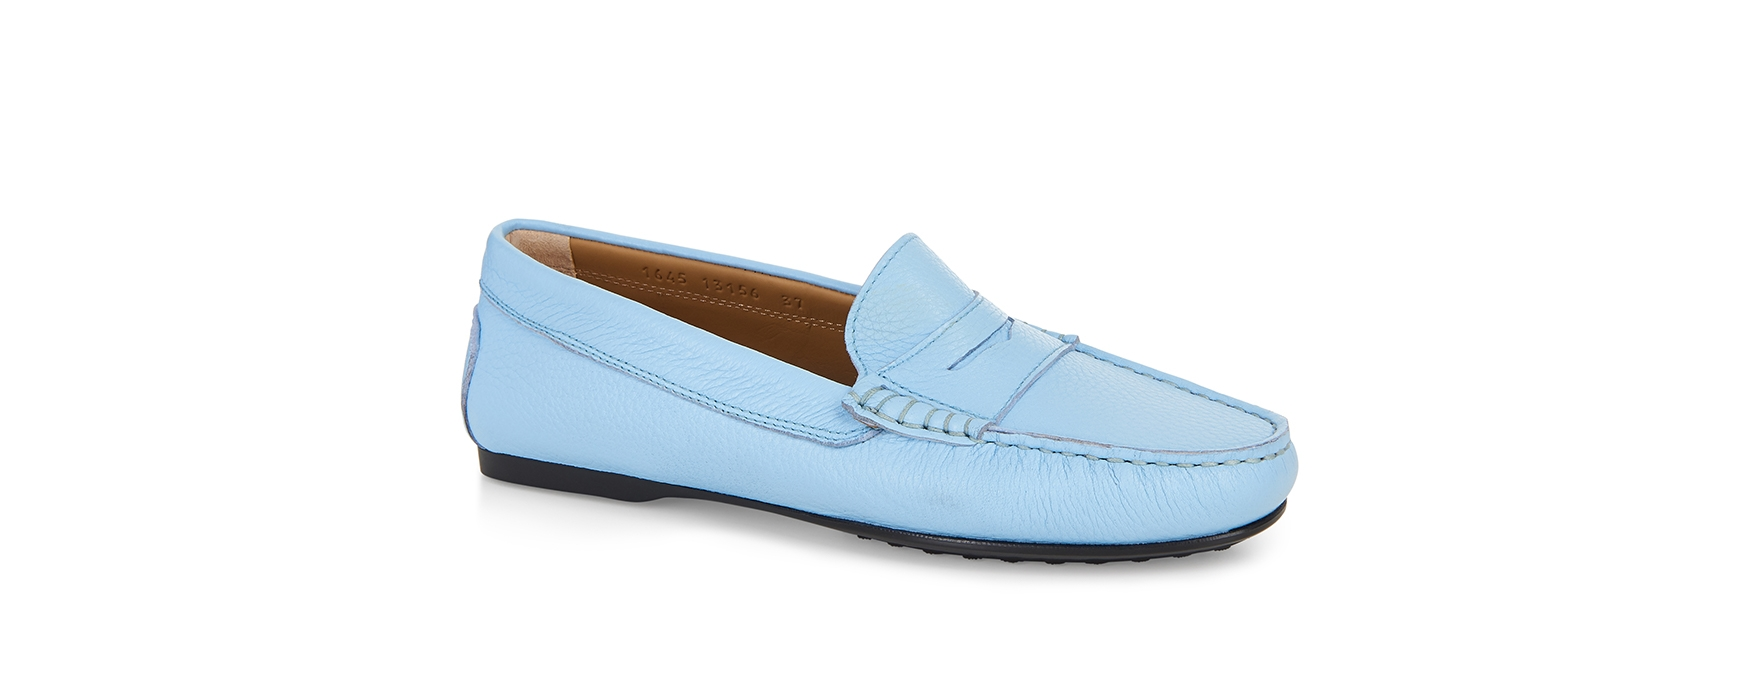 7_7-loafers---moccasins.jpg